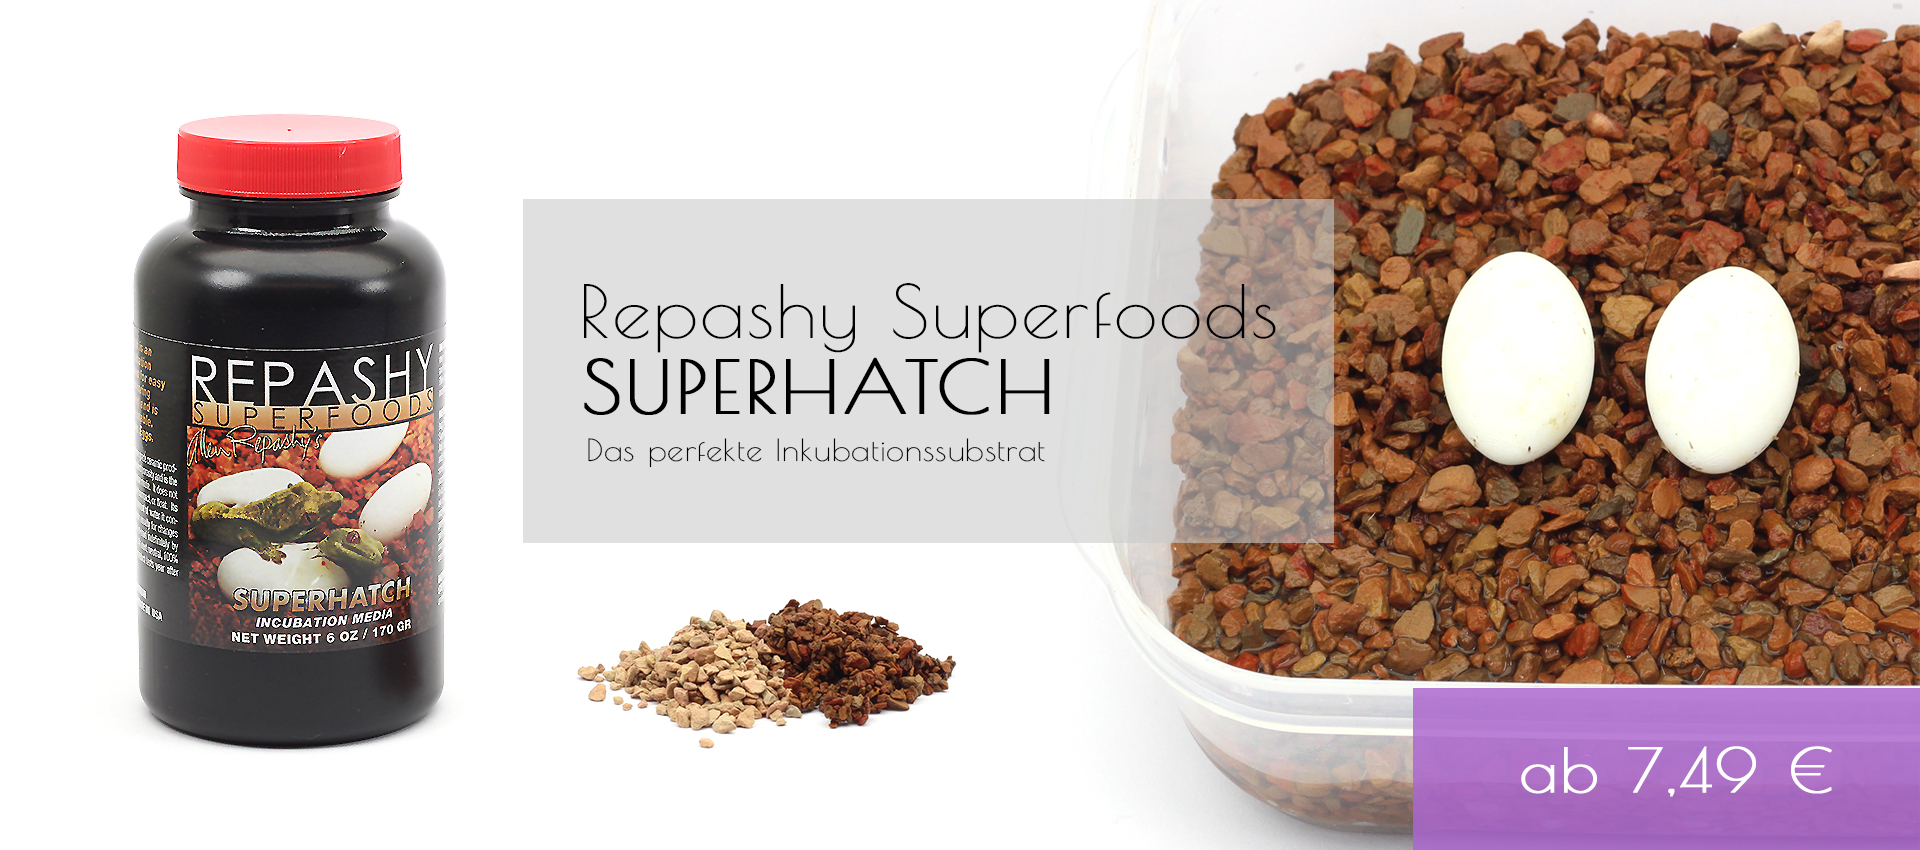 https://www.crestedgeckodiet.de/repashy-superfoods/superhatch